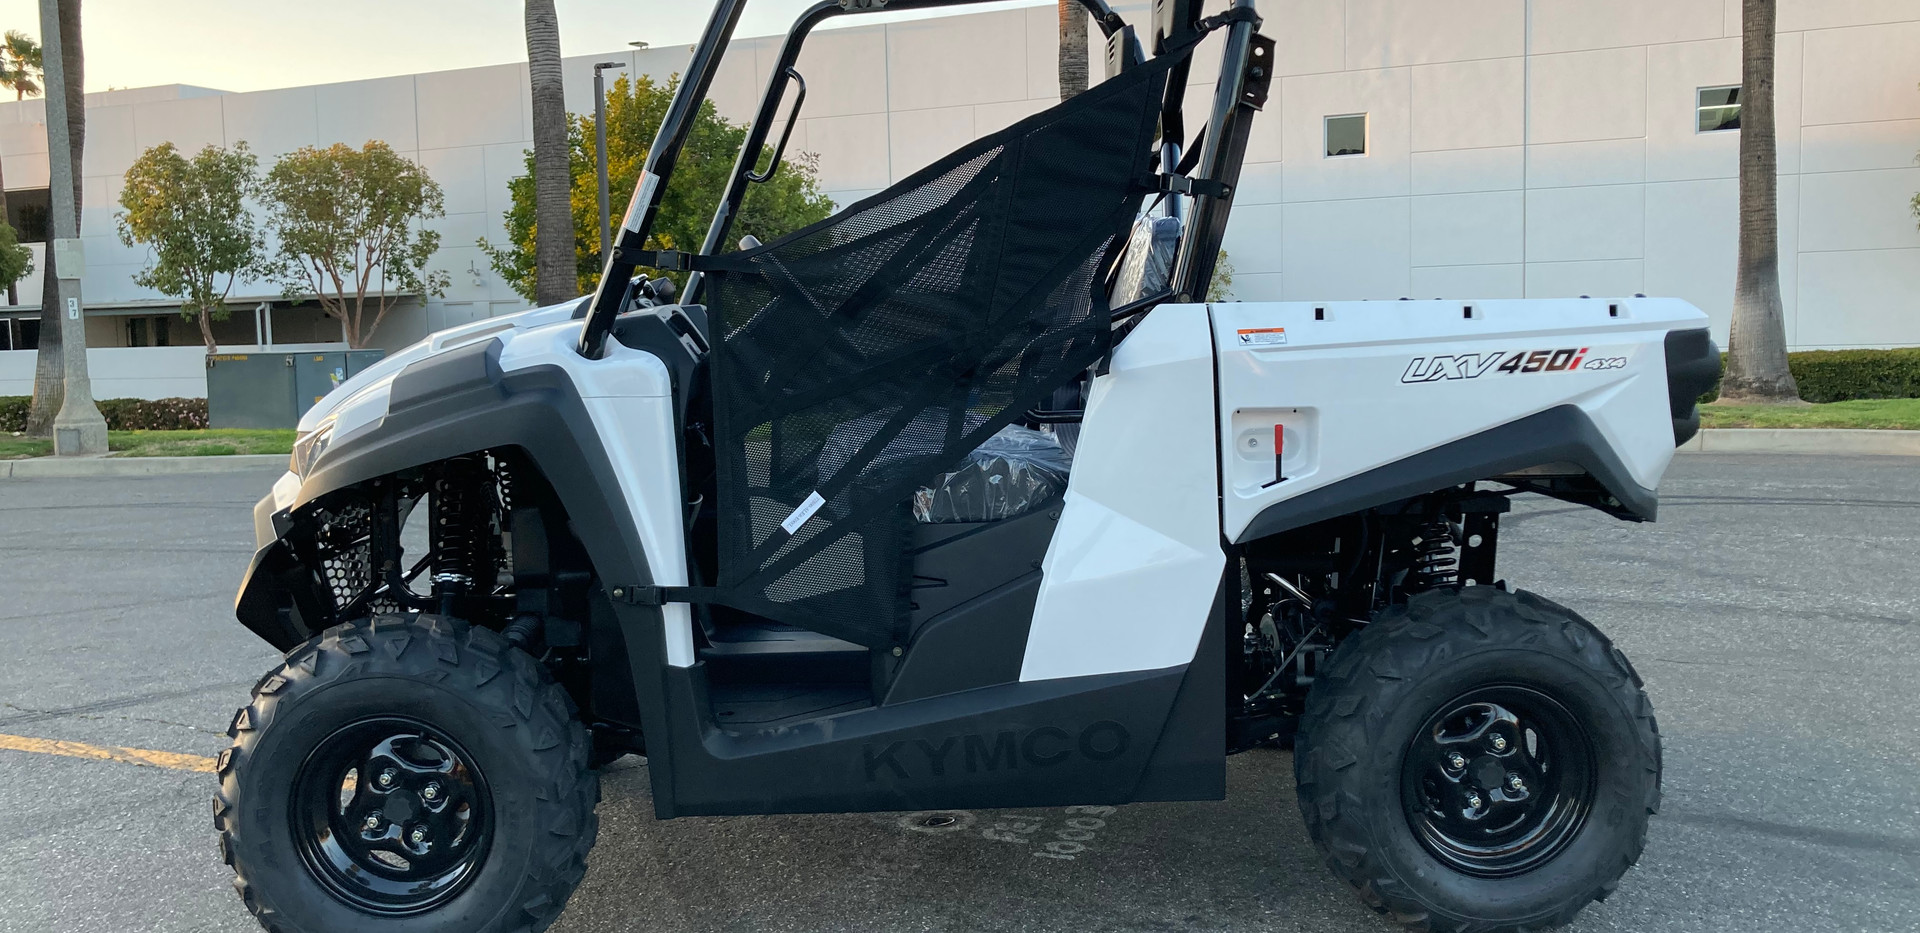 KYMCO UXV 450i White 4x4 Fuel Injected Sport Utility Side by Side